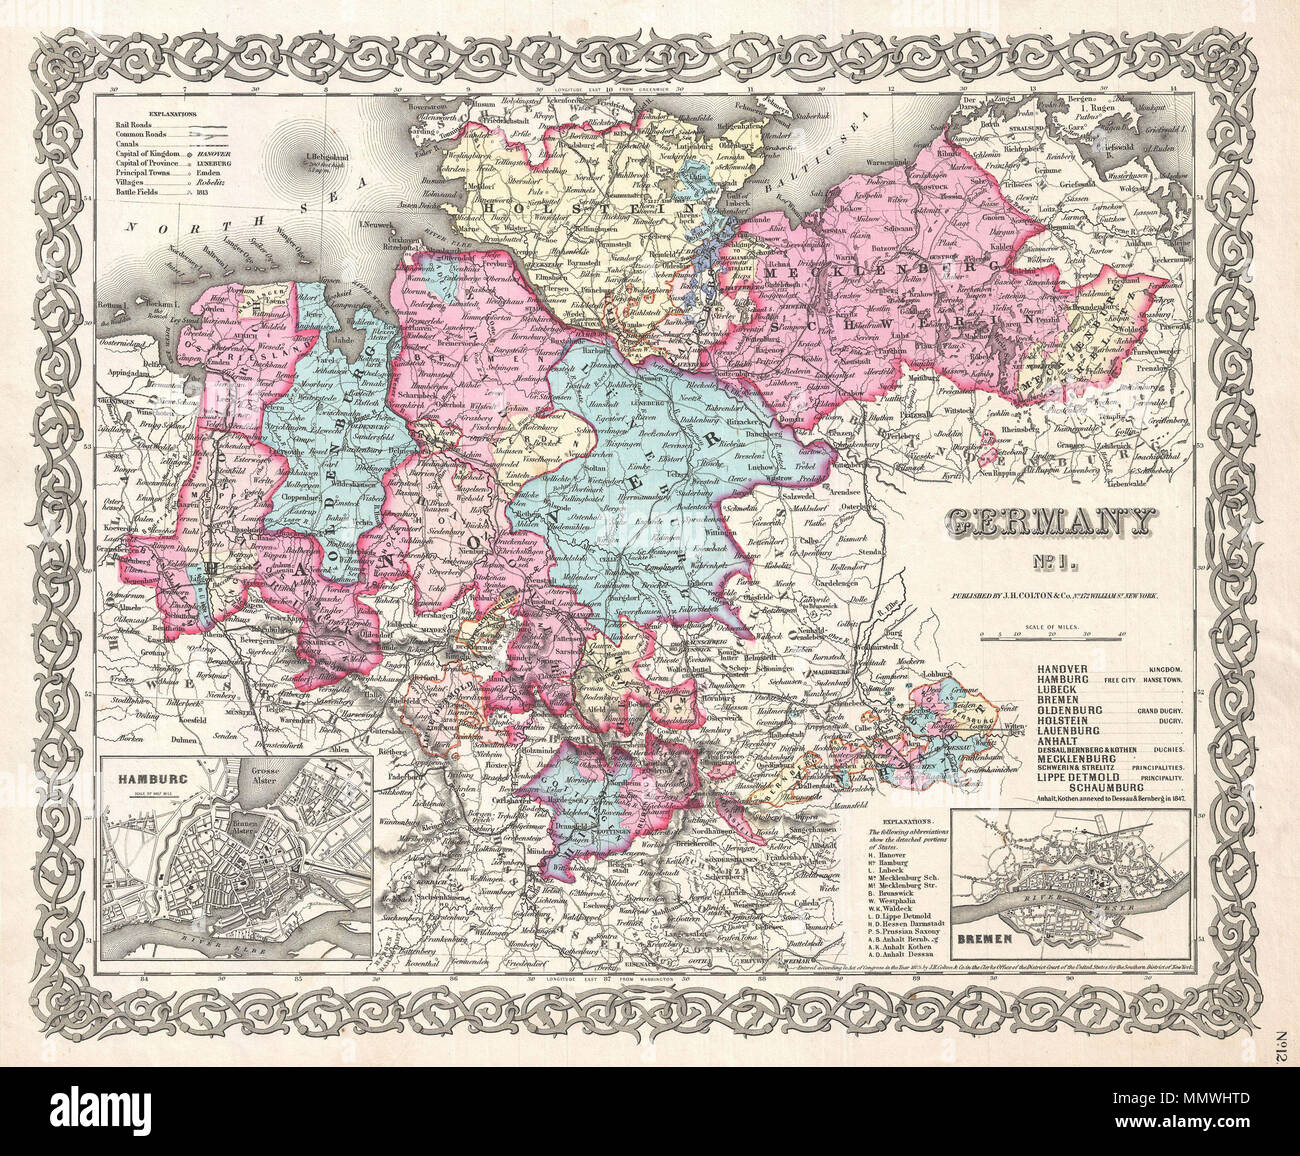 Map Of Germany With Cities And Towns In English.English A Beautiful 1855 First Edition Example Of Colton S Map Of